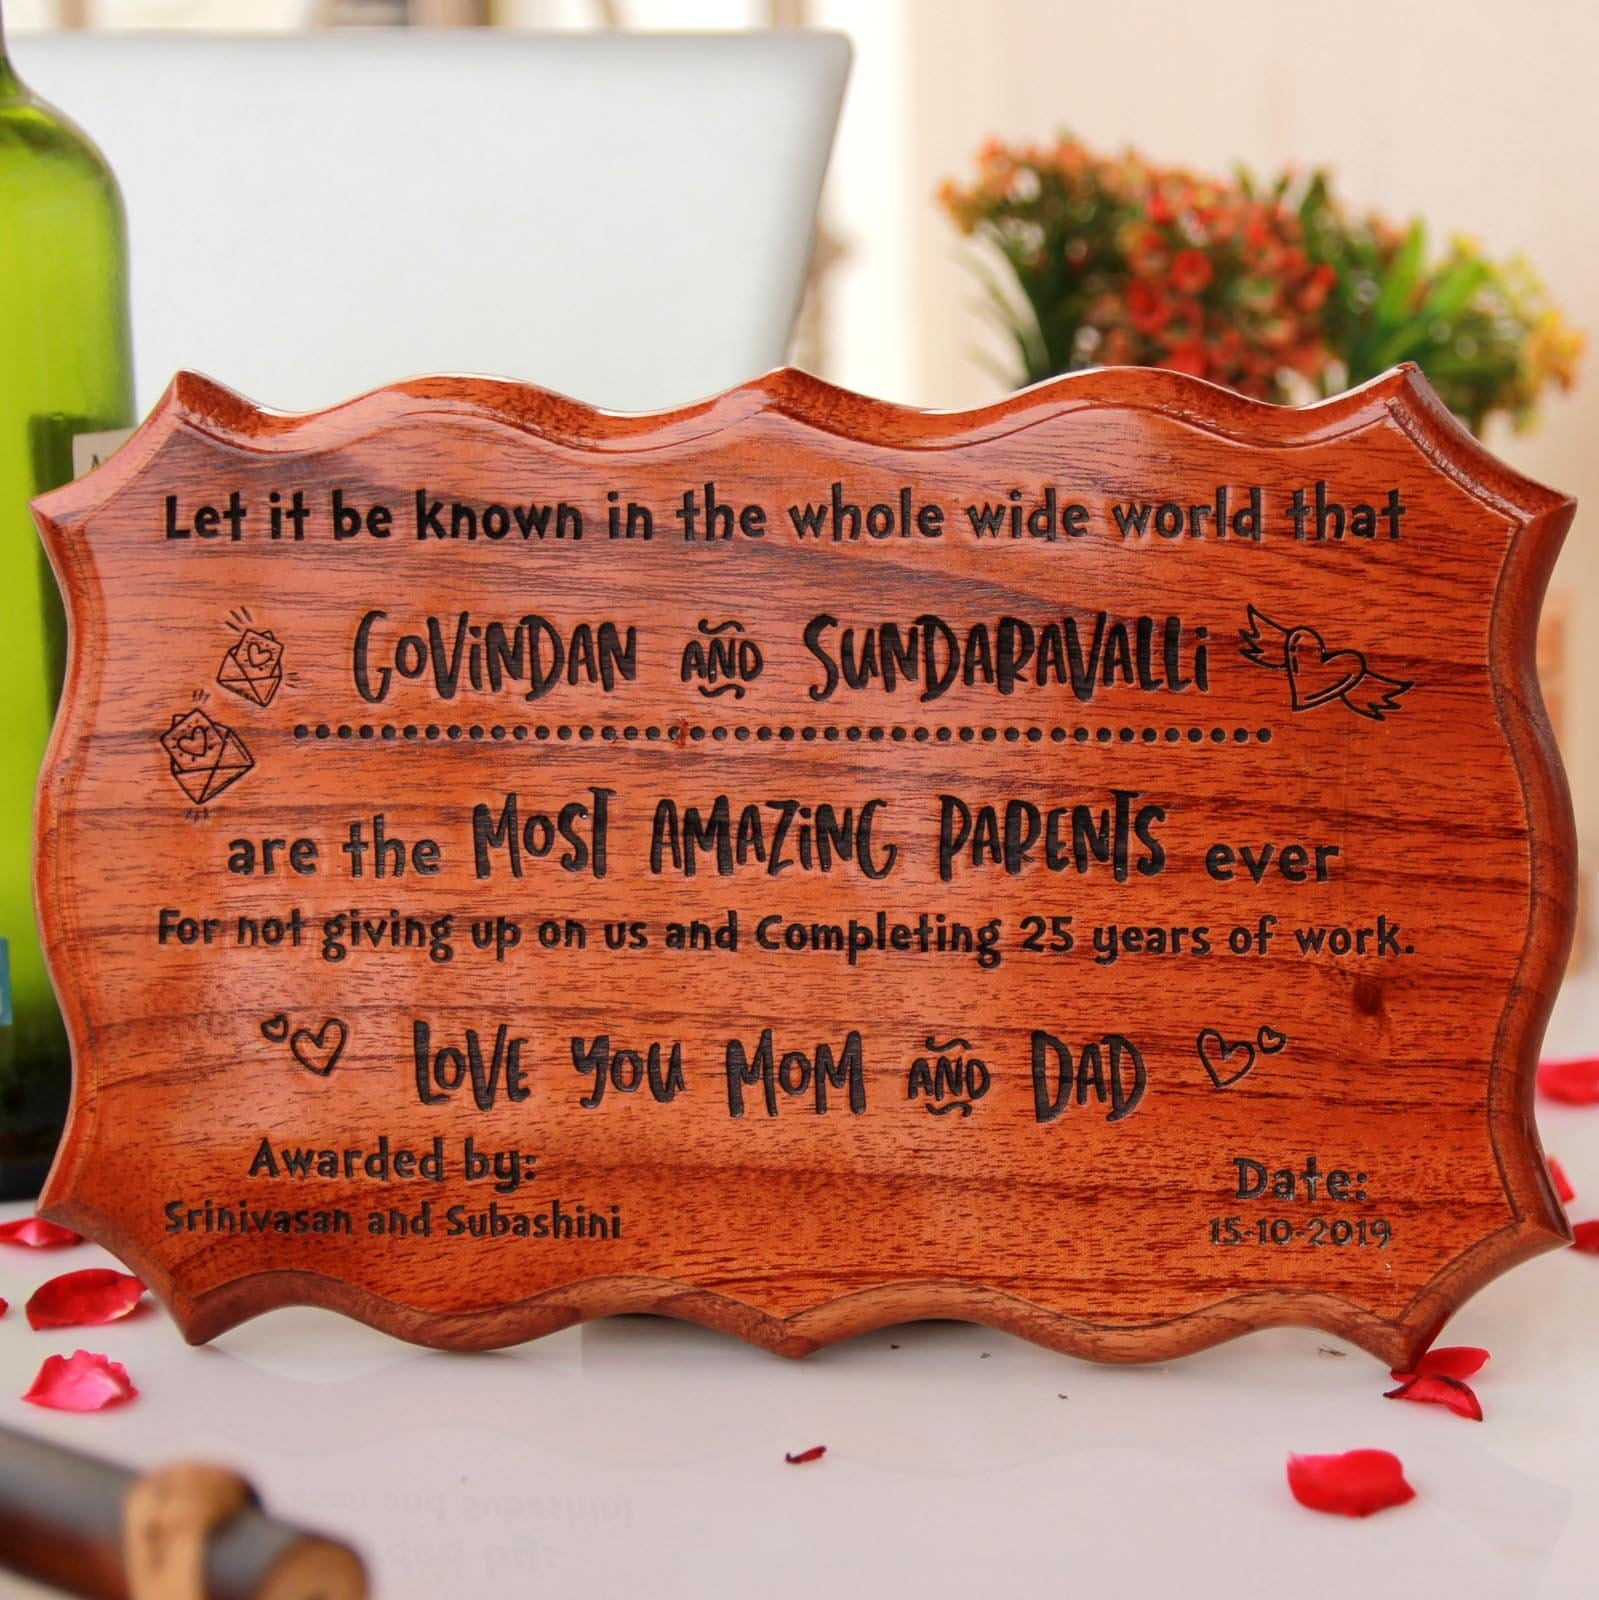 Certificate of Appreciation For The Most Amazing Parents Ever. This Wooden Certificate Makes Great Anniversary Gifts For Parents. This Certificate of Recognition Makes Great Gifts for Mom and Dad.